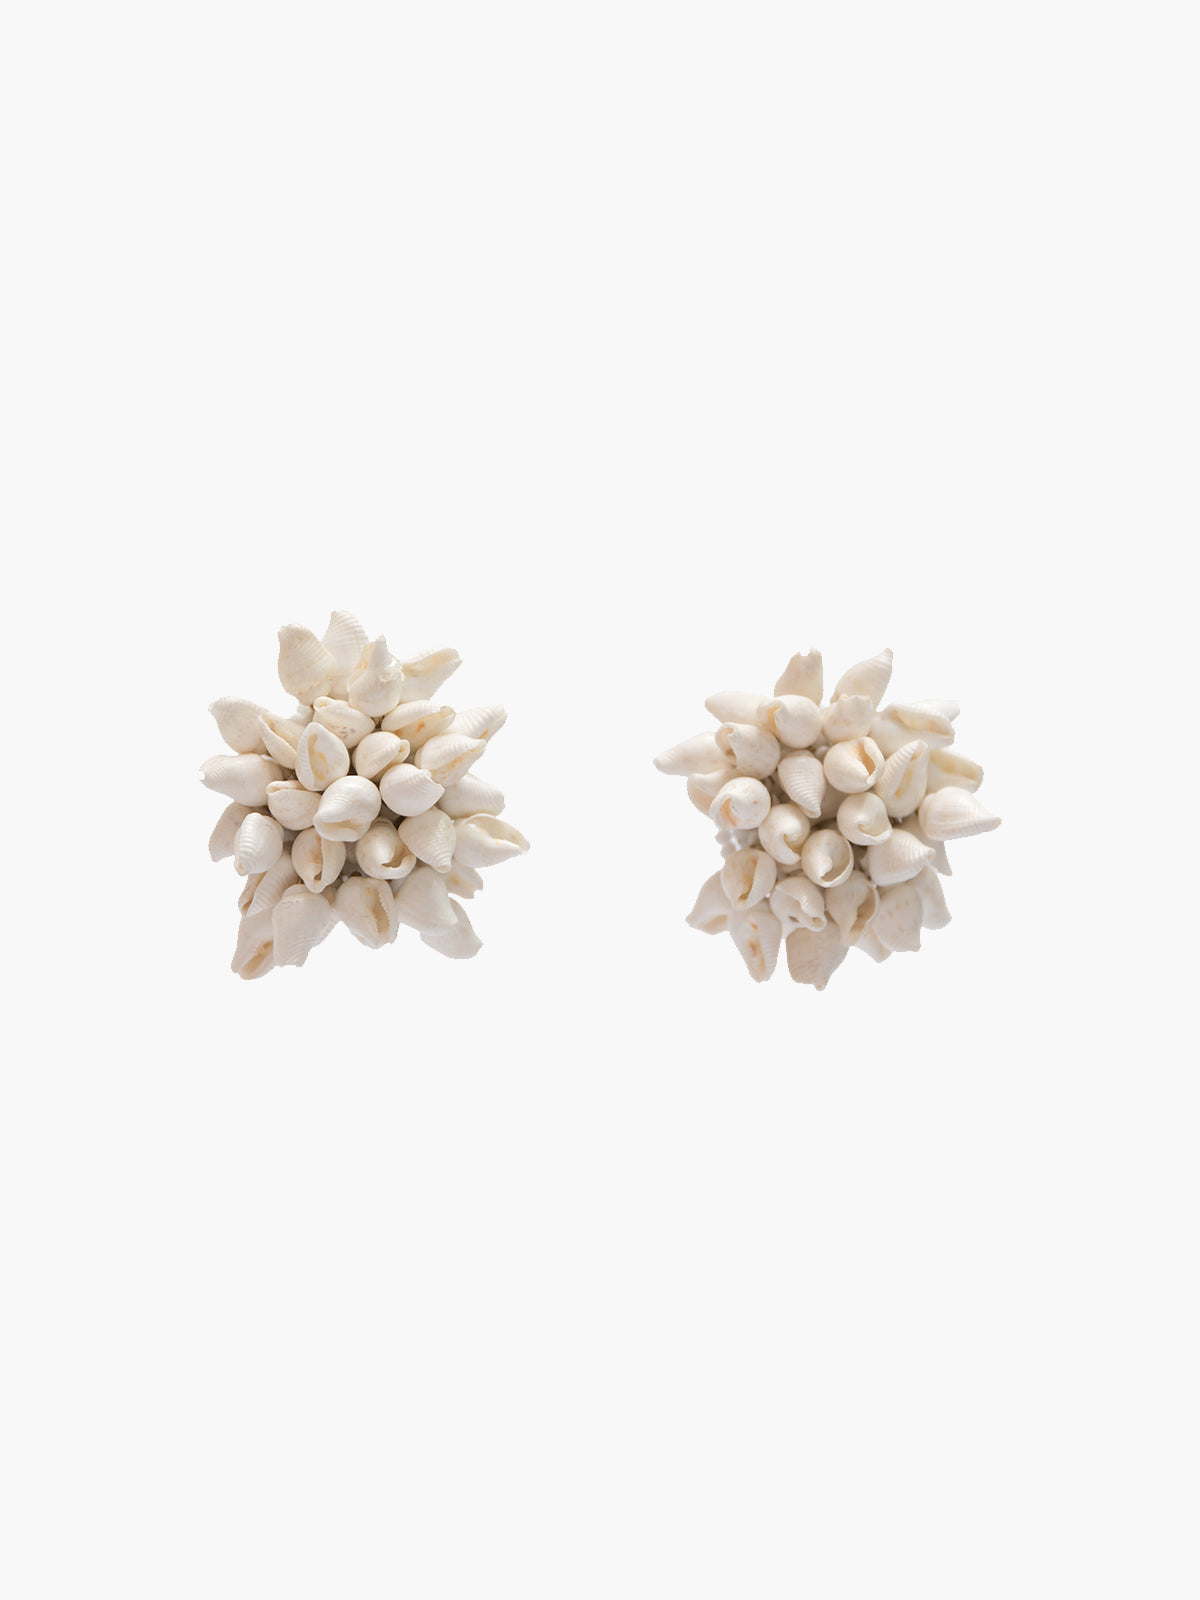 Seashell Stud Earrings | Natural Seashell Stud Earrings | Natural